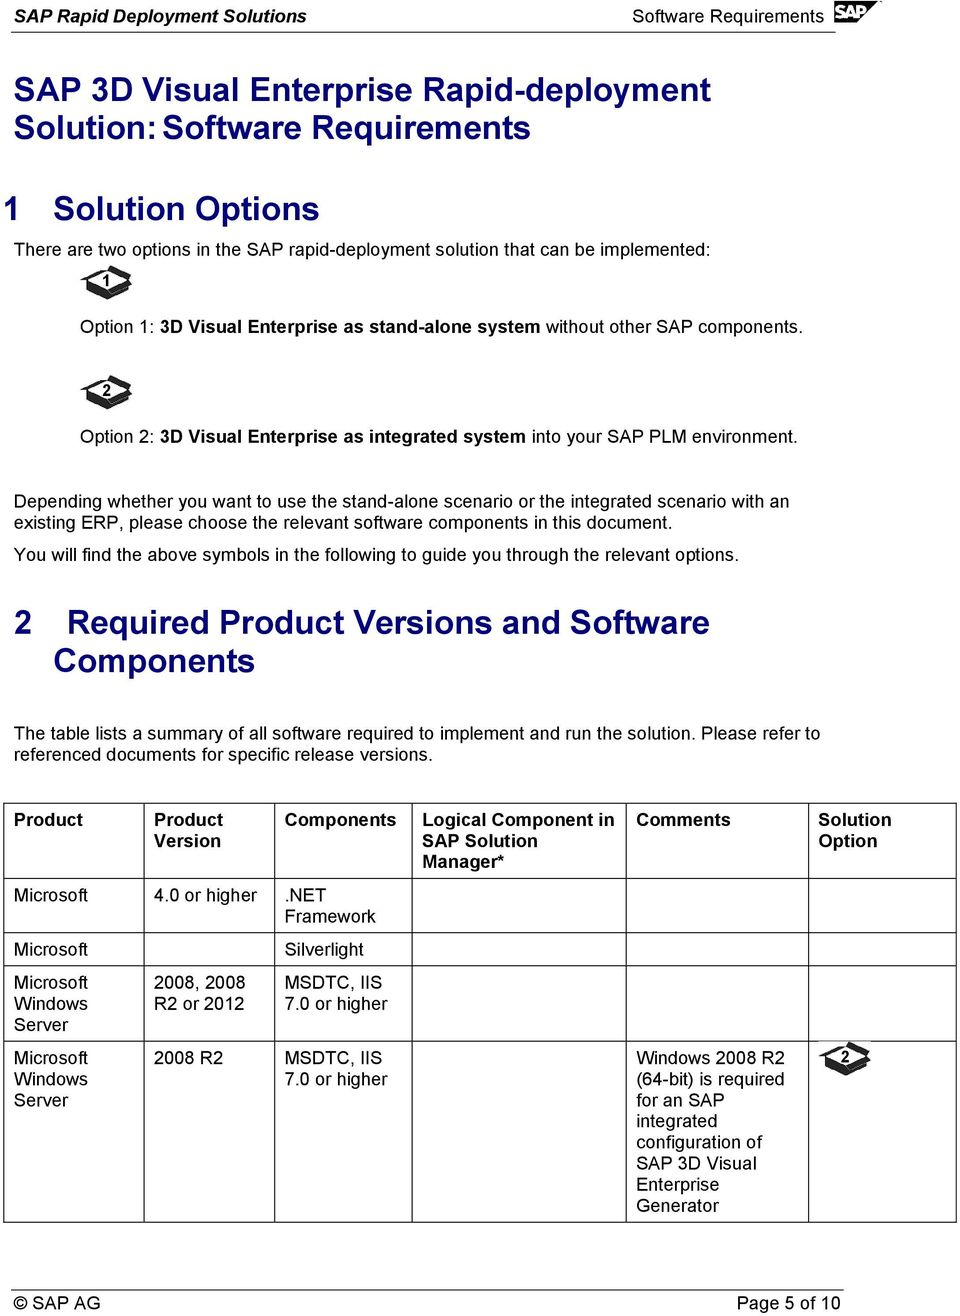 Depending whether you want to use the stand-alone scenario or the integrated scenario with an existing ERP, please choose the relevant software components in this document.